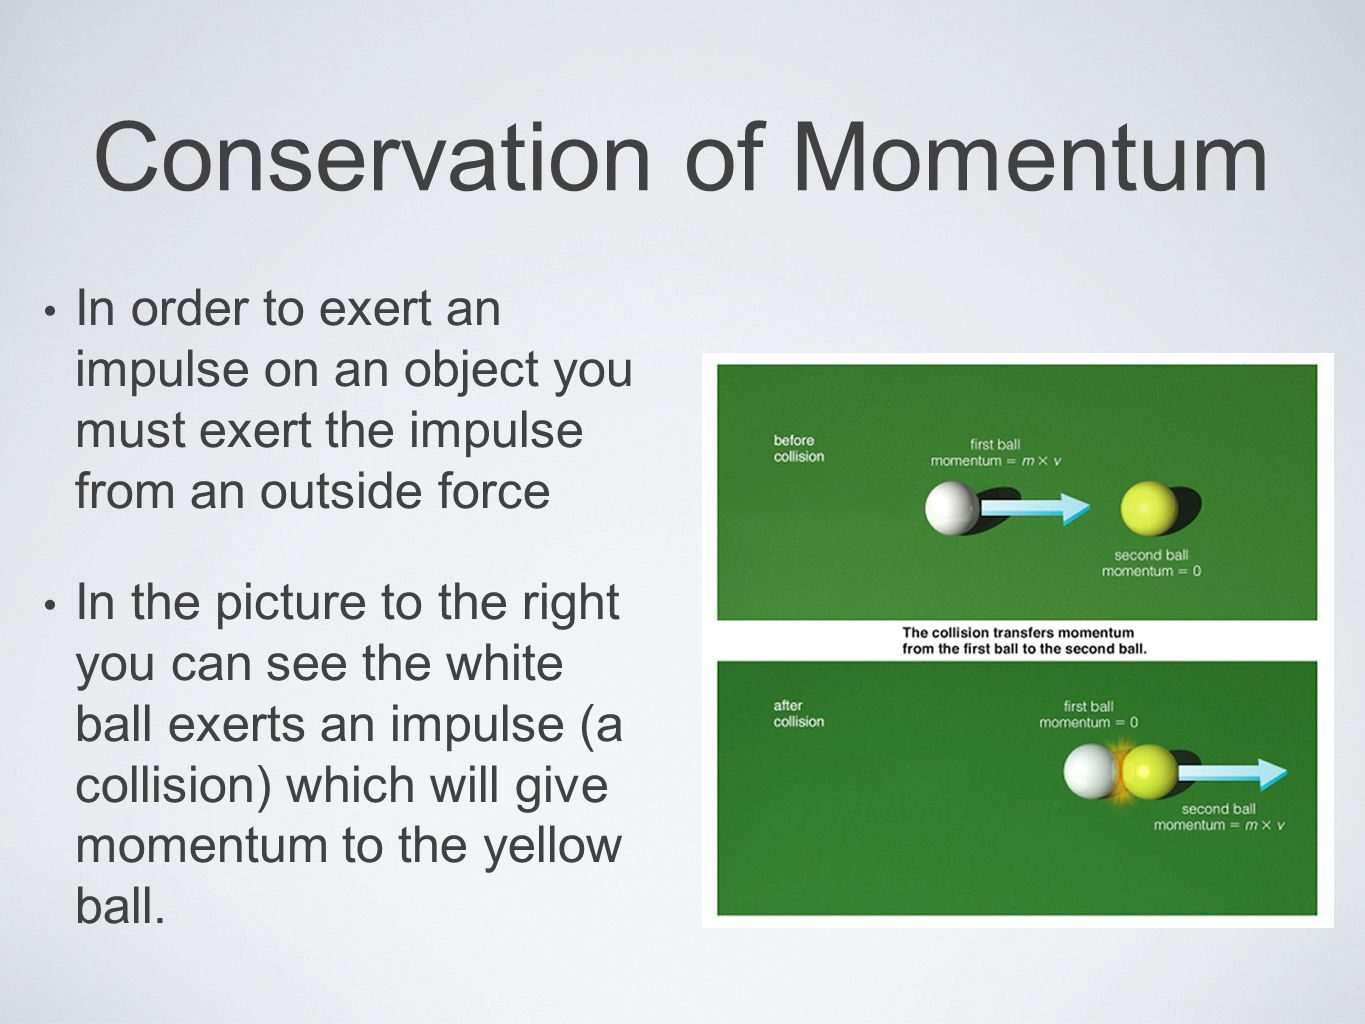 Conservation of Momentum In order to exert an impulse on an object you must exert the impulse from an outside force In the picture to the right you can see the white ball exerts an impulse (a collision) which will give momentum to the yellow ball.